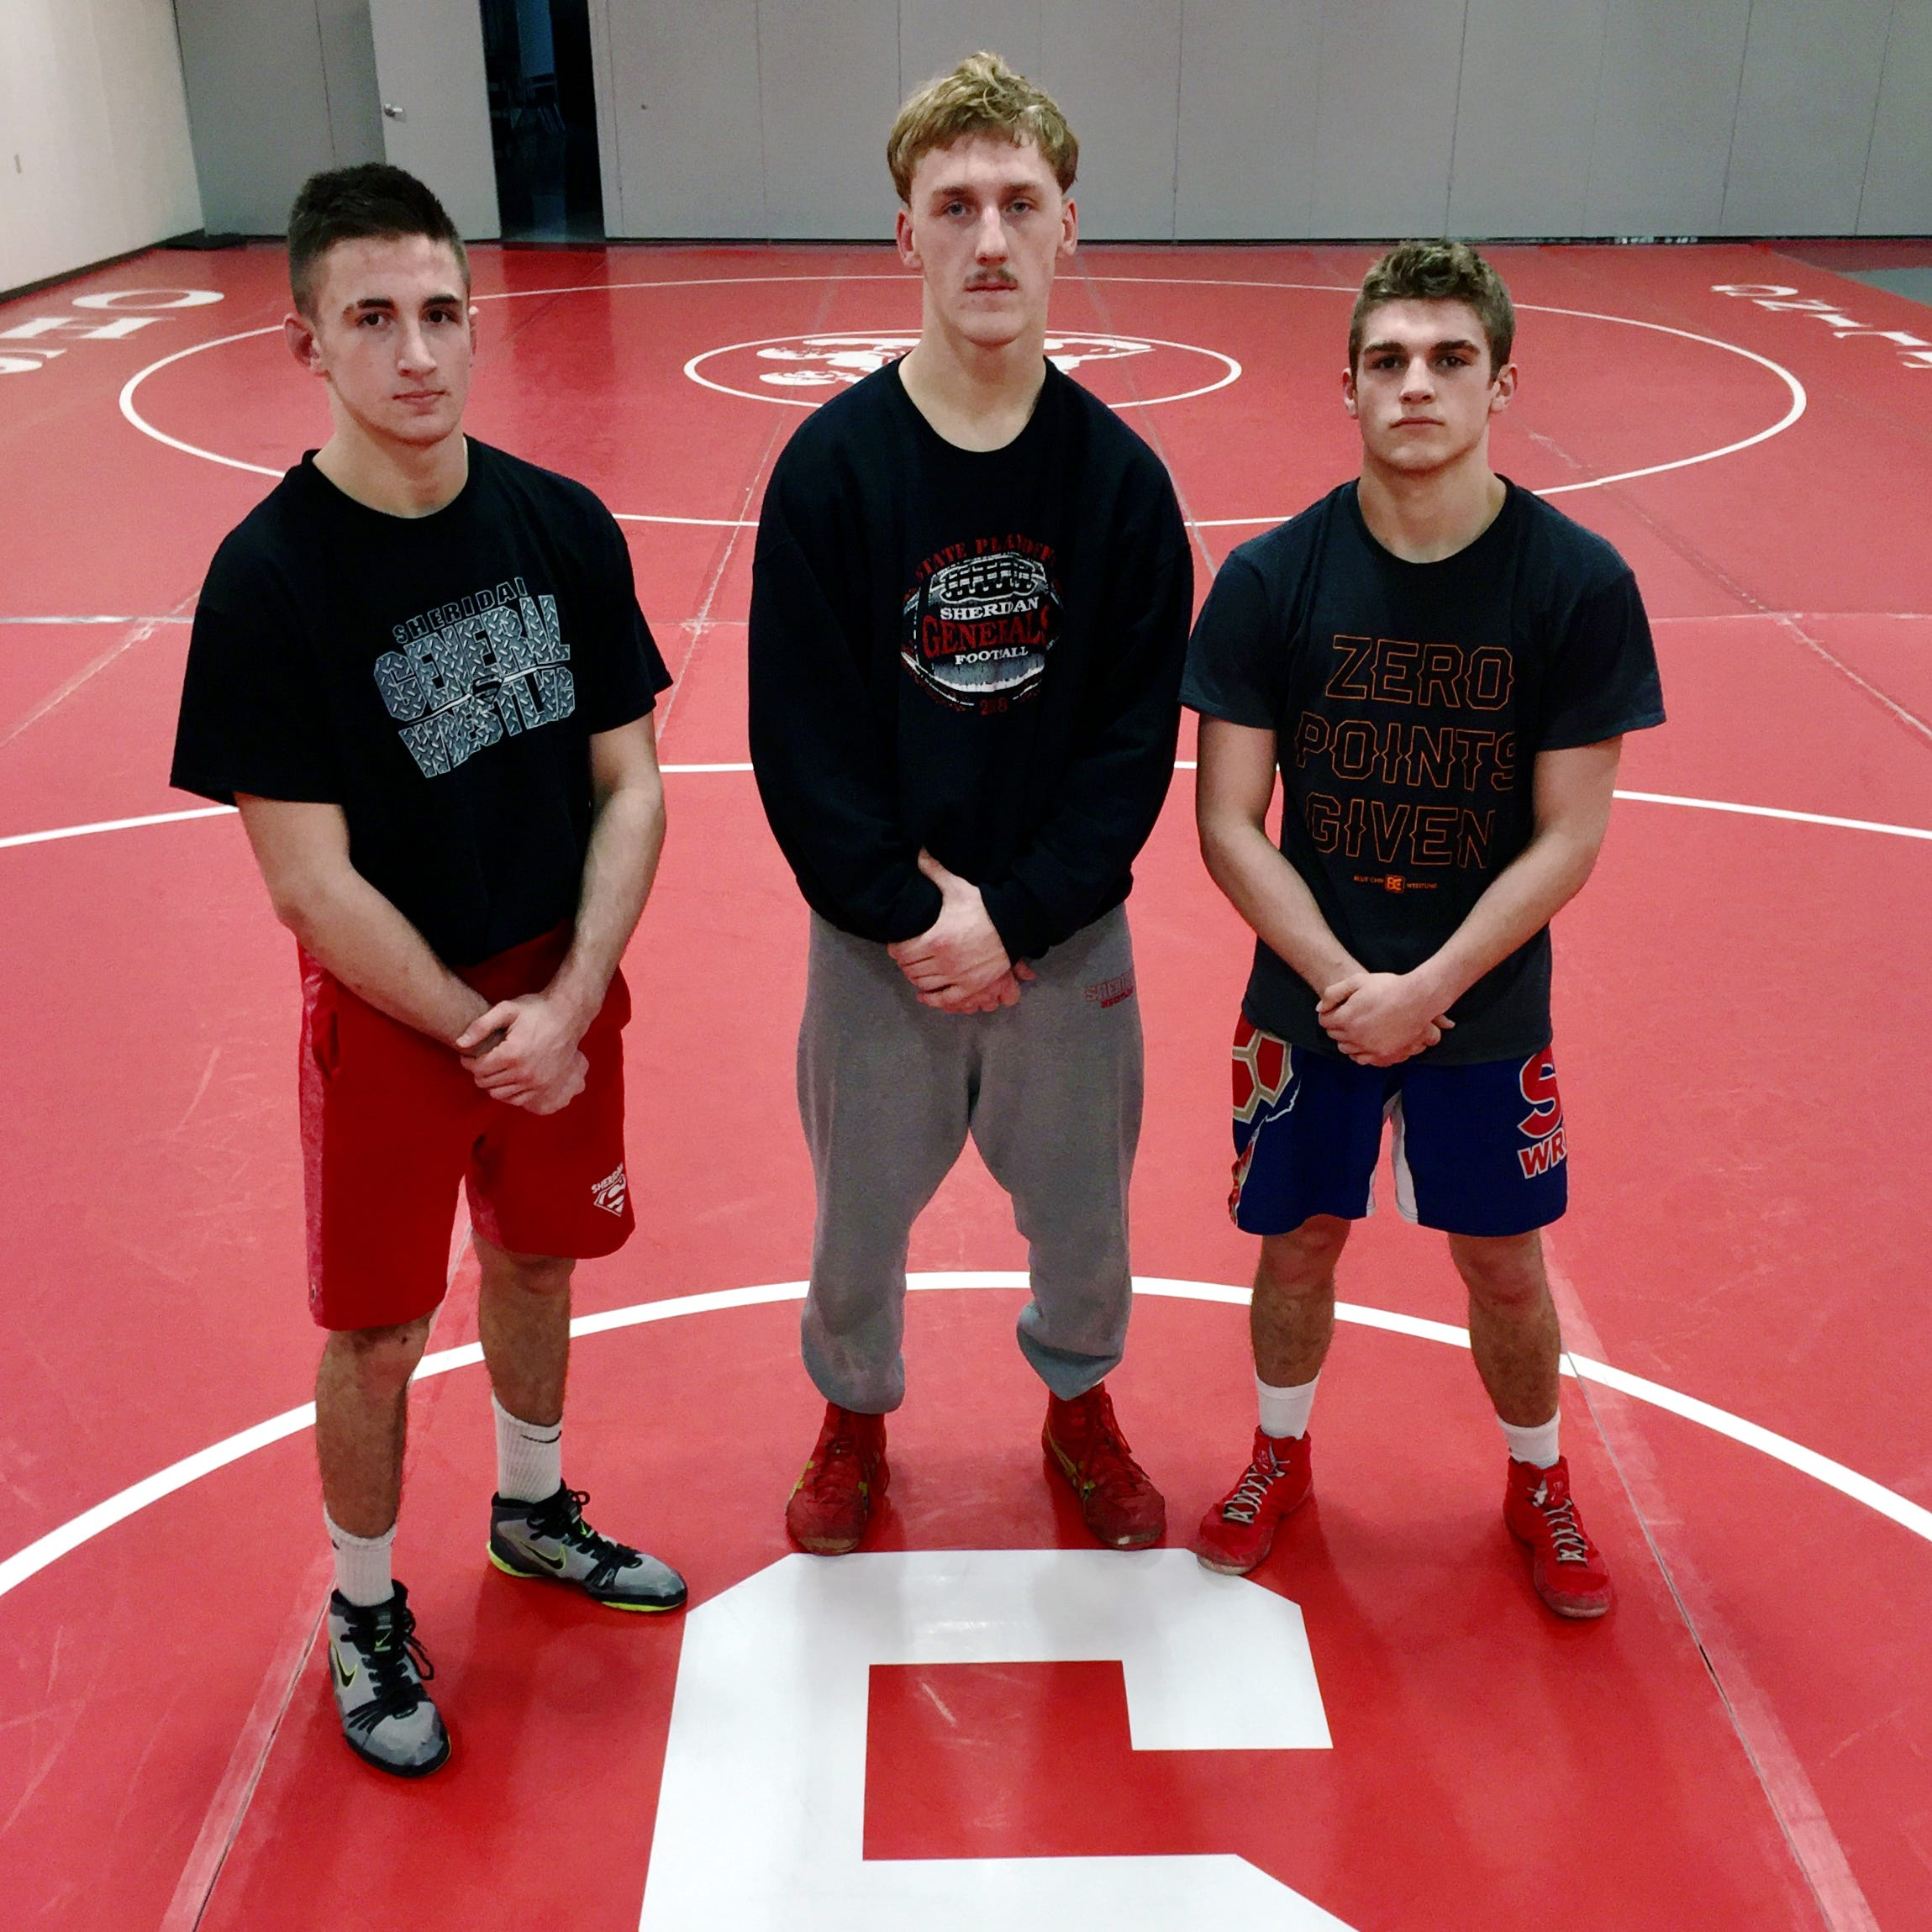 Family ties: Sheridan wrestlers following lineage to state